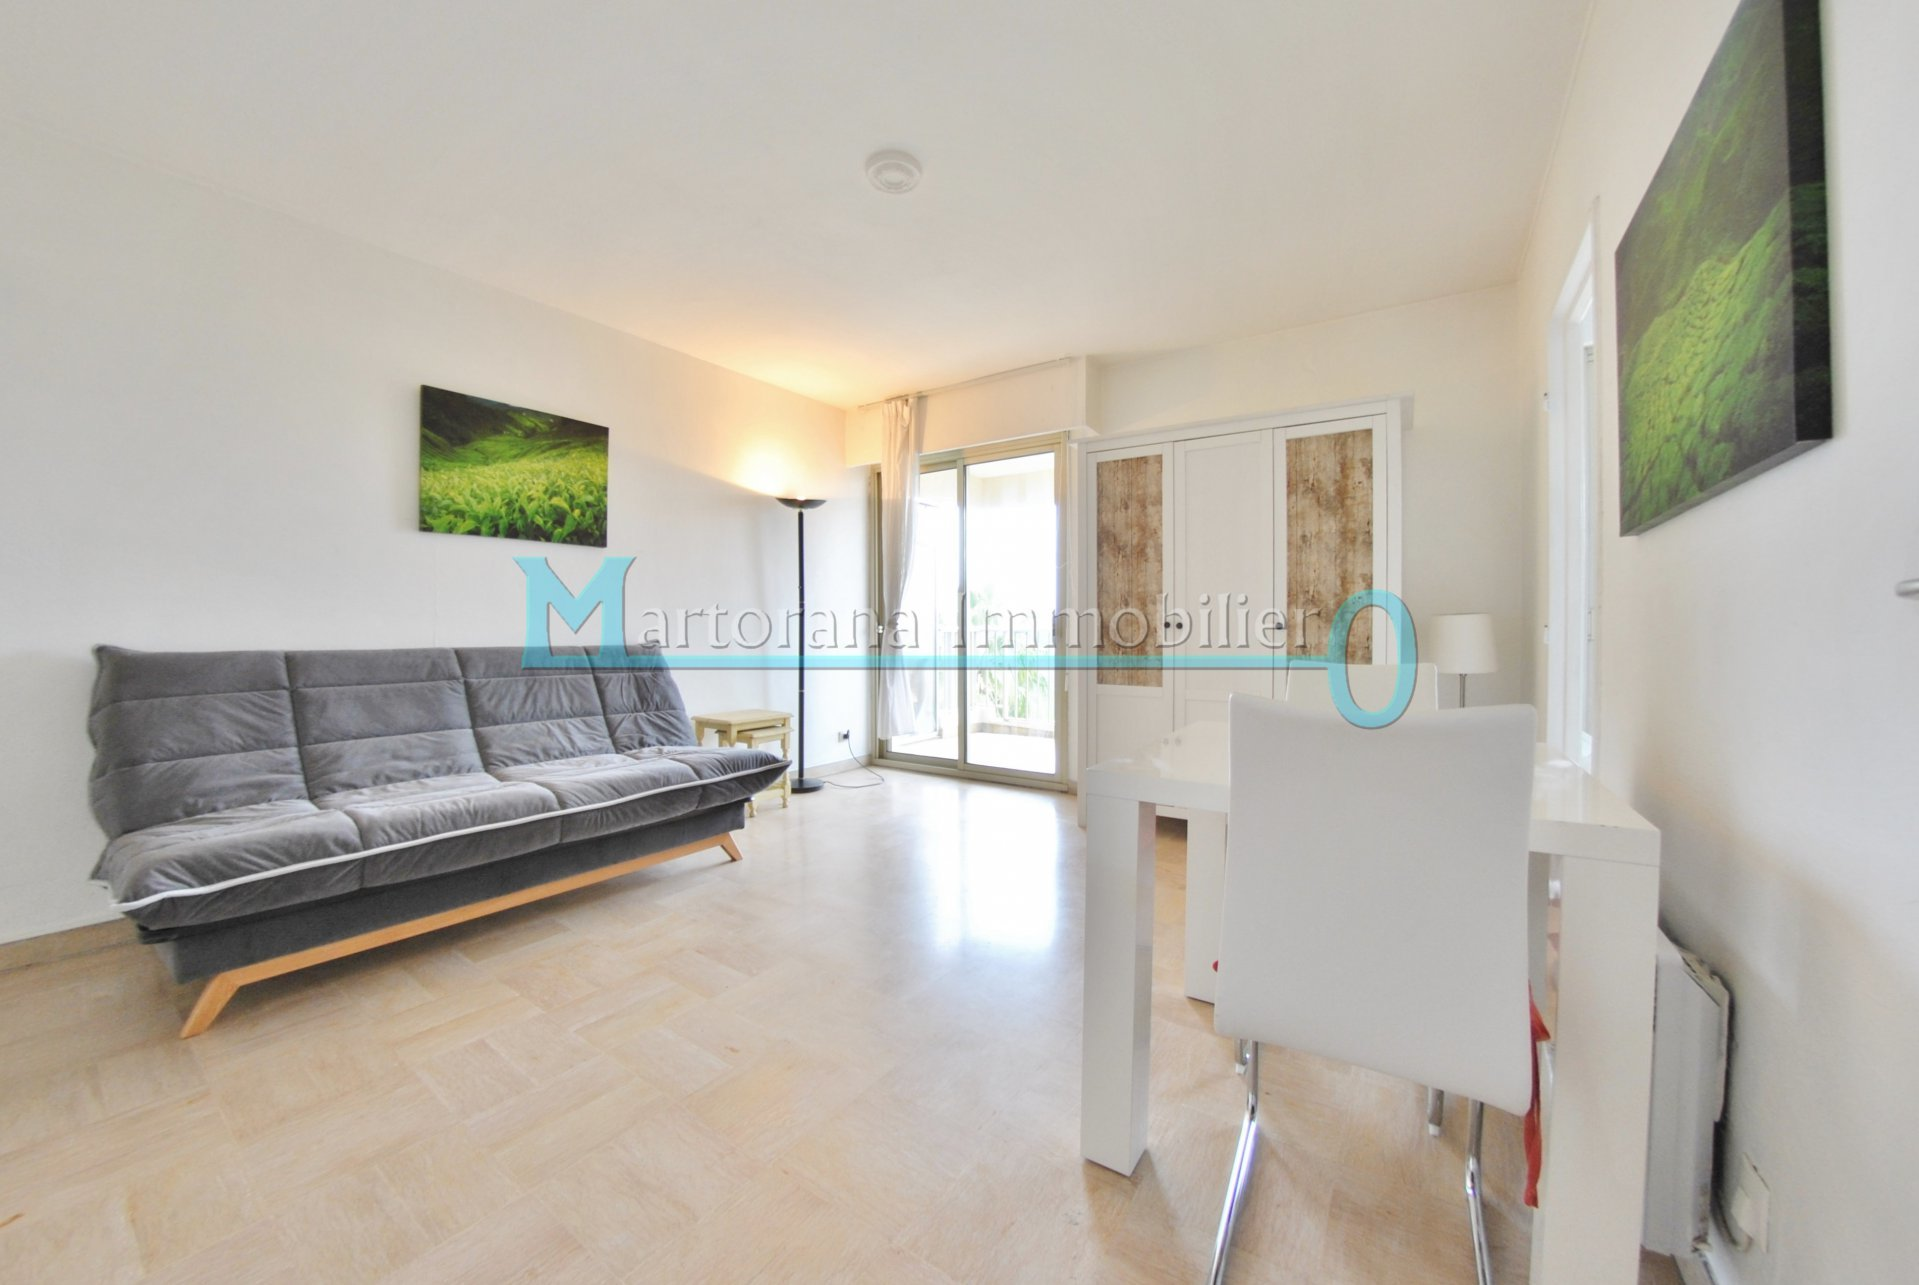 Furnished studio in top floor with terrace, cellar and private parking in a residency with swimming pool